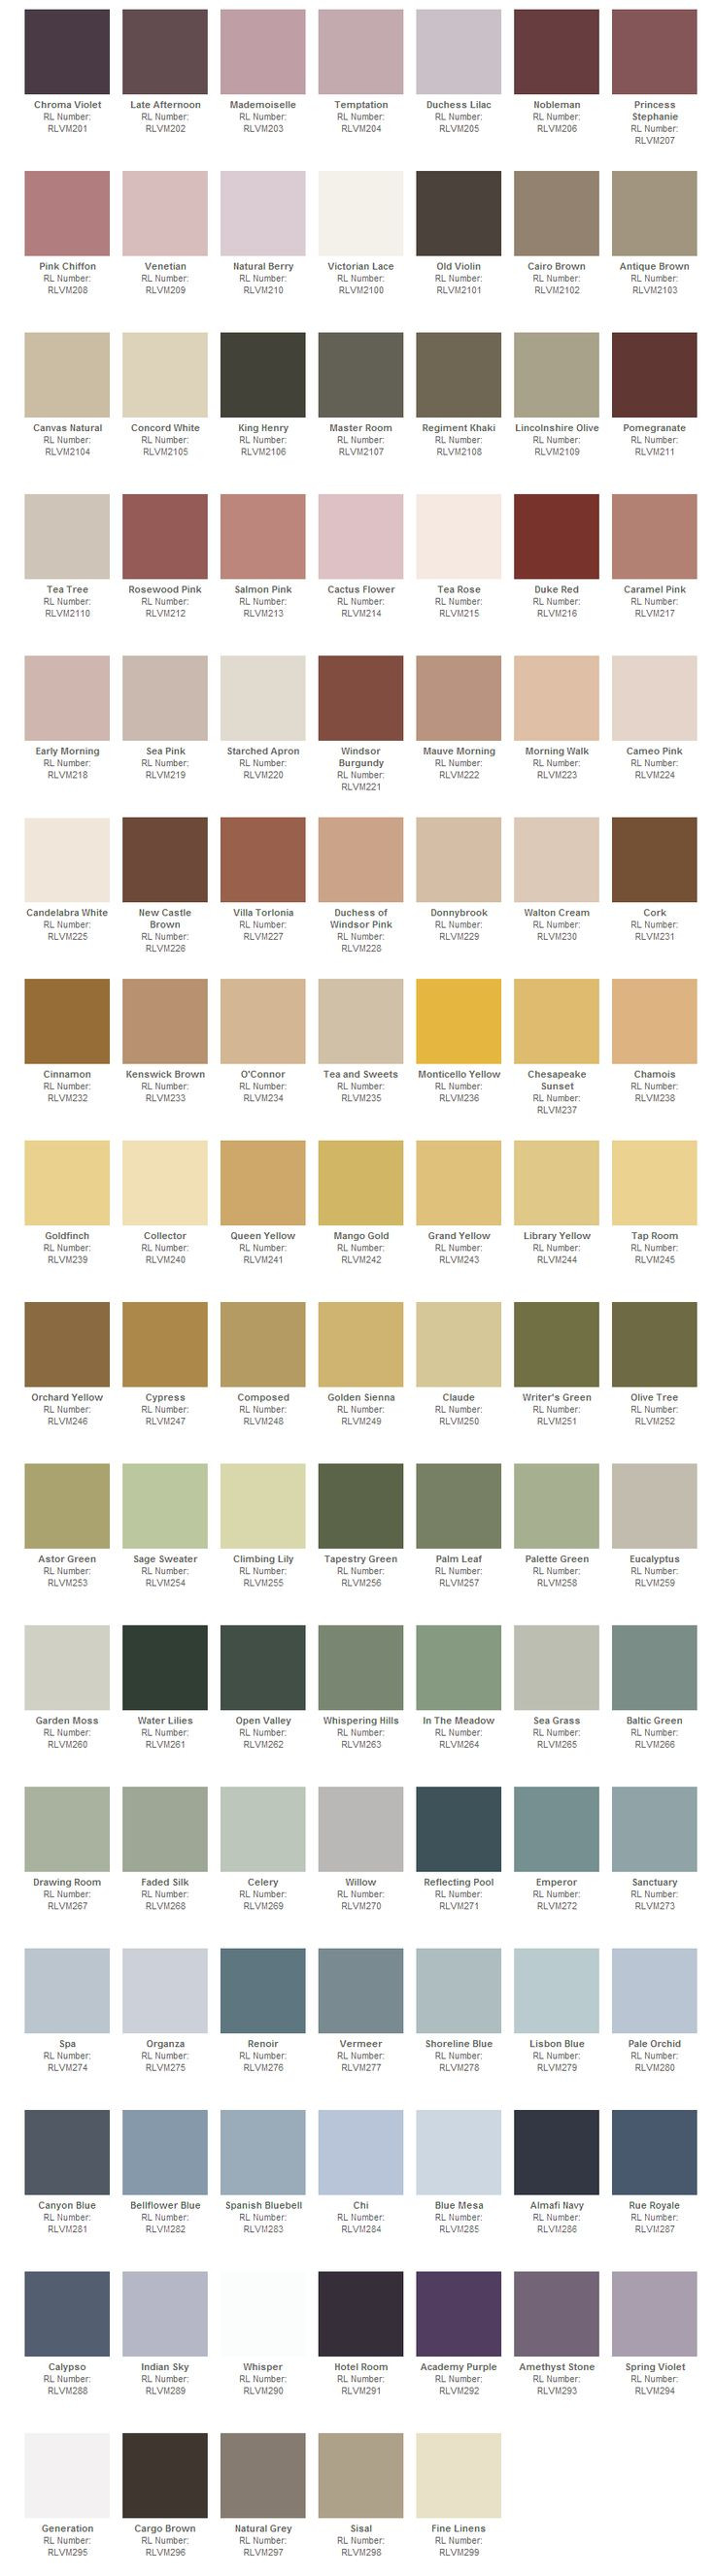 Best ideas about Ralph Lauren Paint Colors . Save or Pin 1065 best images about Interiors Color binations on Now.